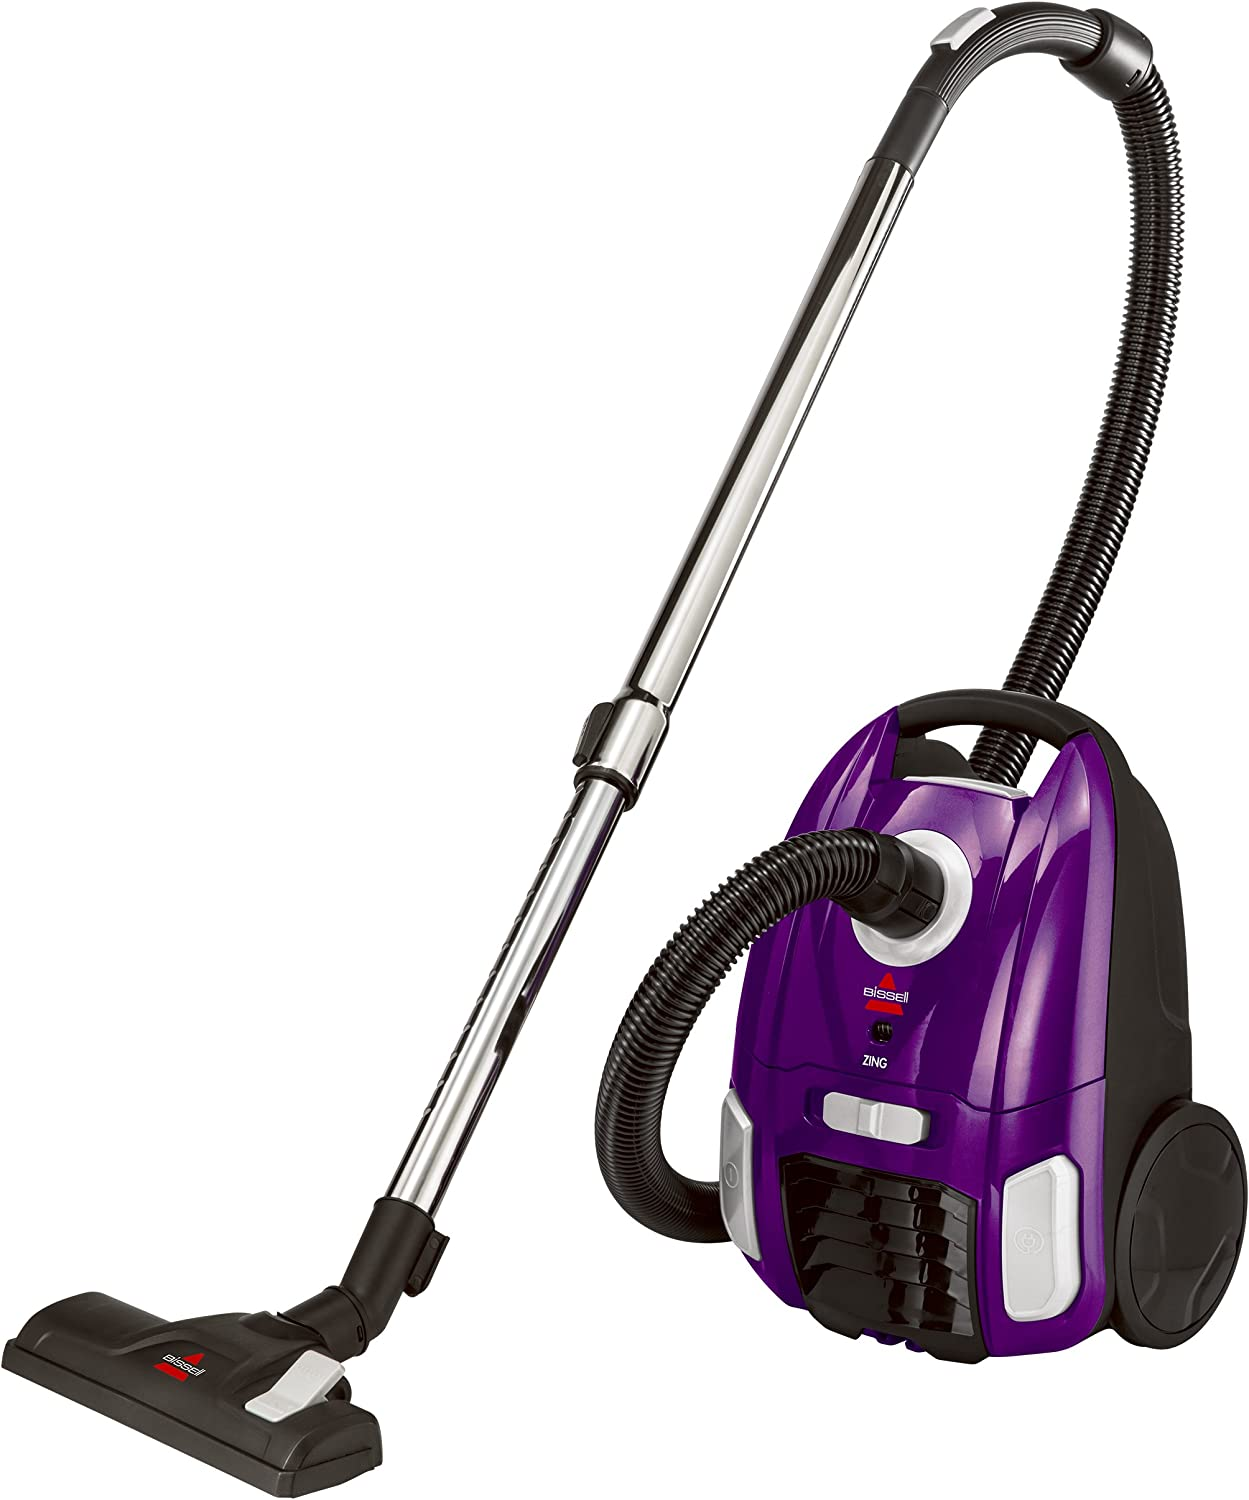 2. BISSELL Zing Lightweight, Bagged Canister Vacuum